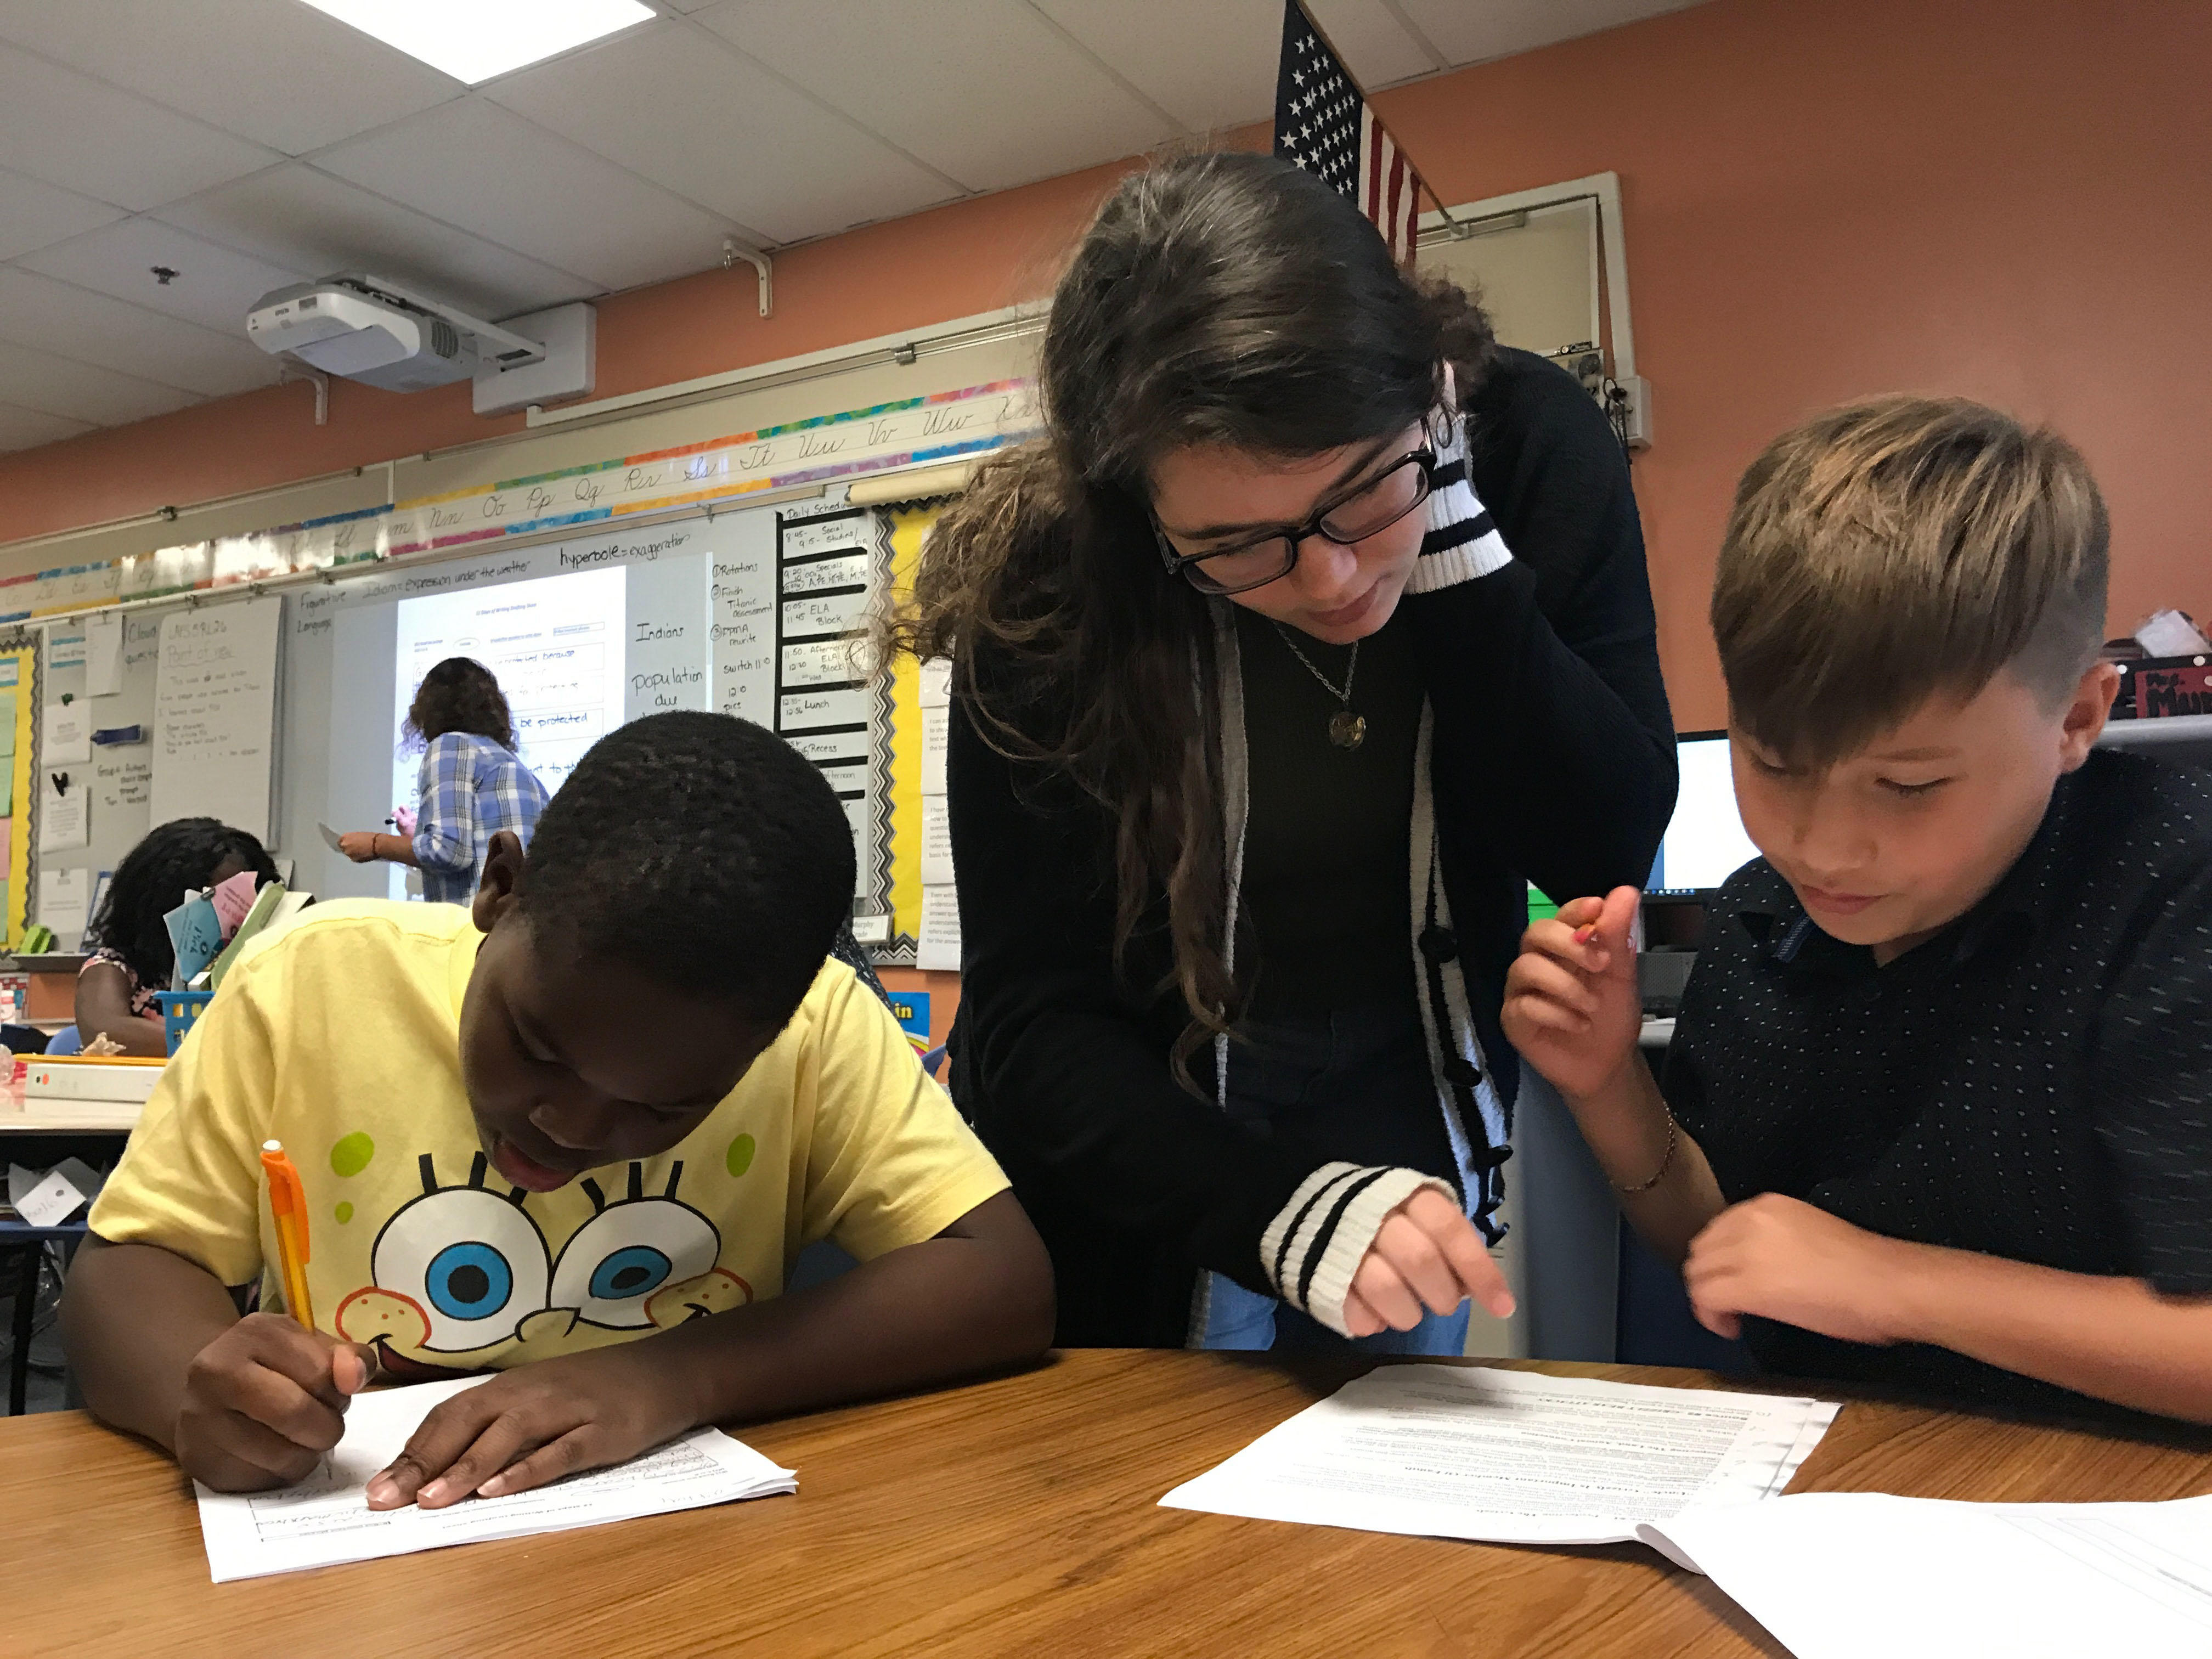 On Tuesday, Oct. 17, during tutoring at Forest City Elementary, junior Emma Murphy helps students A'kai Wallace and Jaiden Stokes with their reading packet. Emma spent over an hour helping the students at after school tutoring.